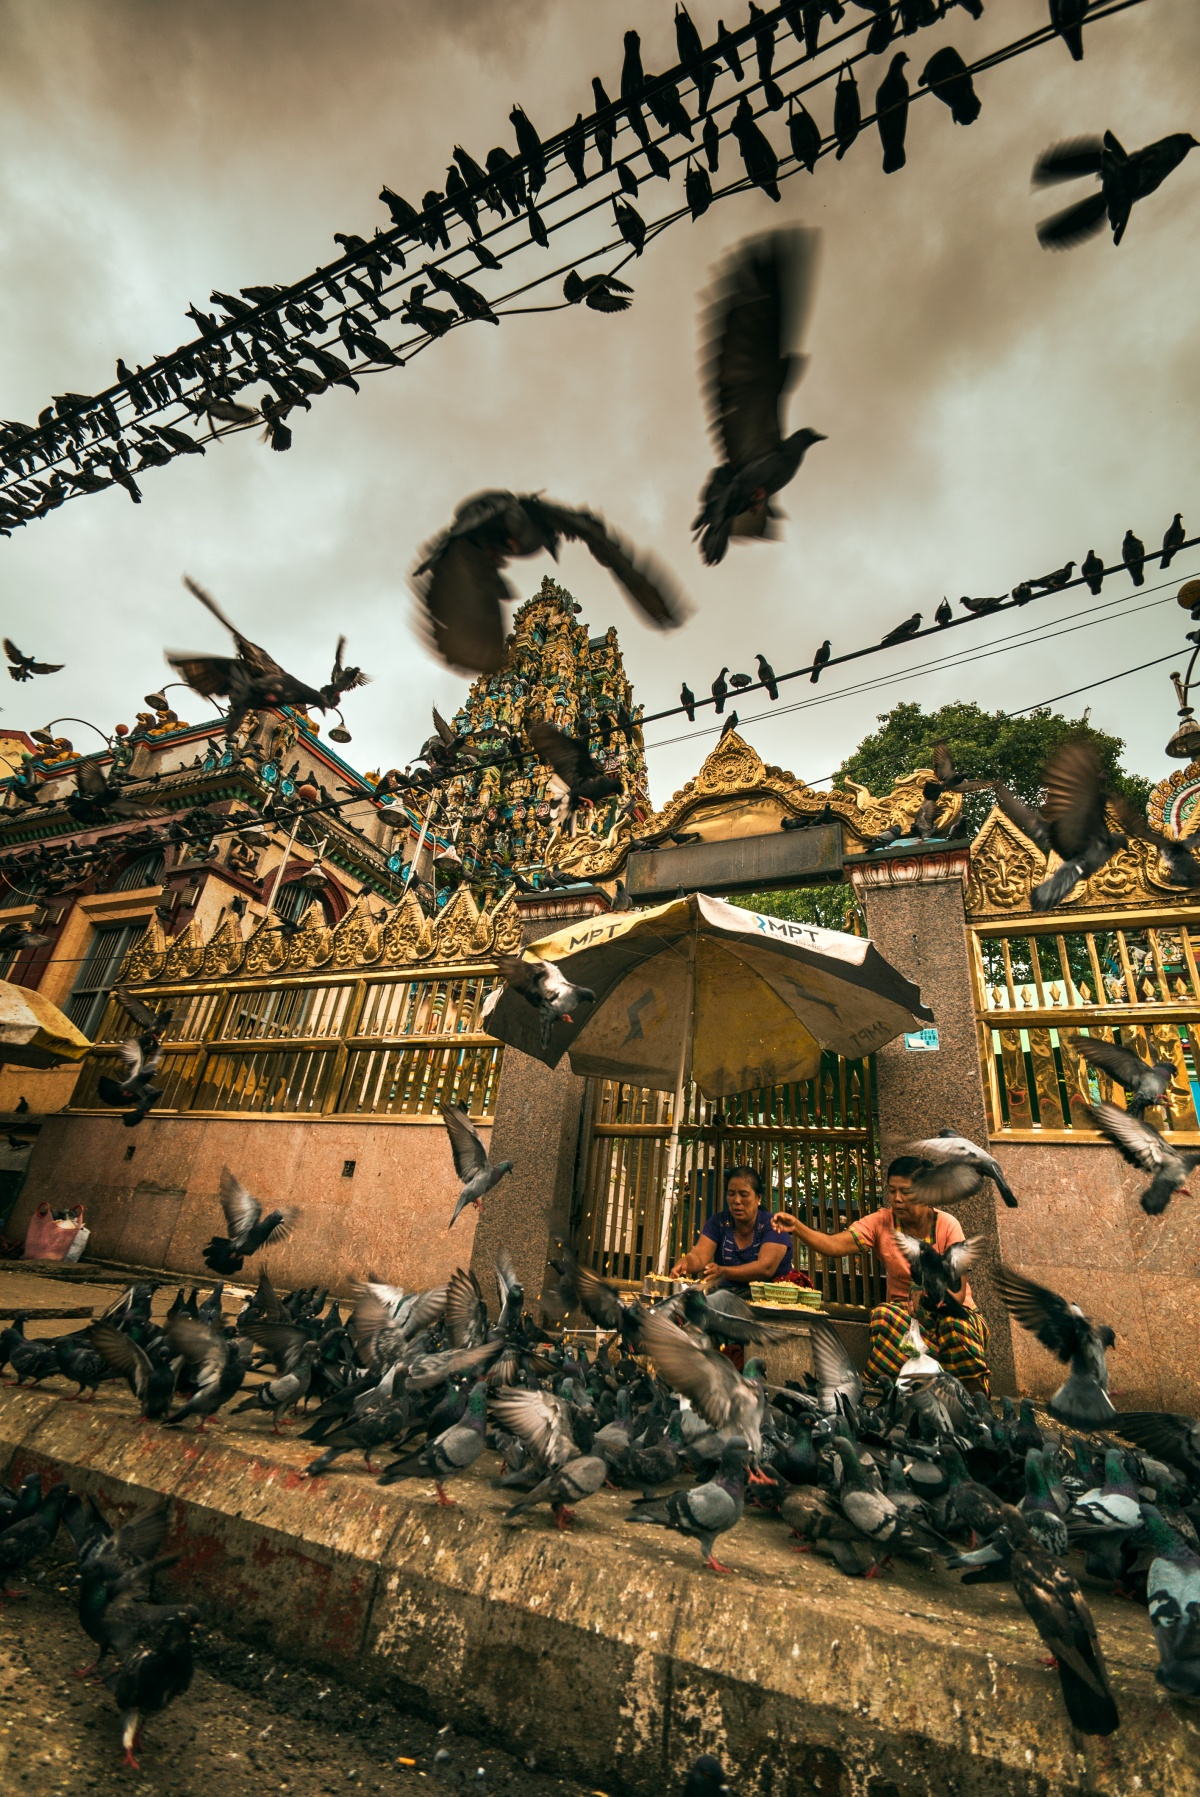 Photo of lots of pigeons and a hindu temple in background